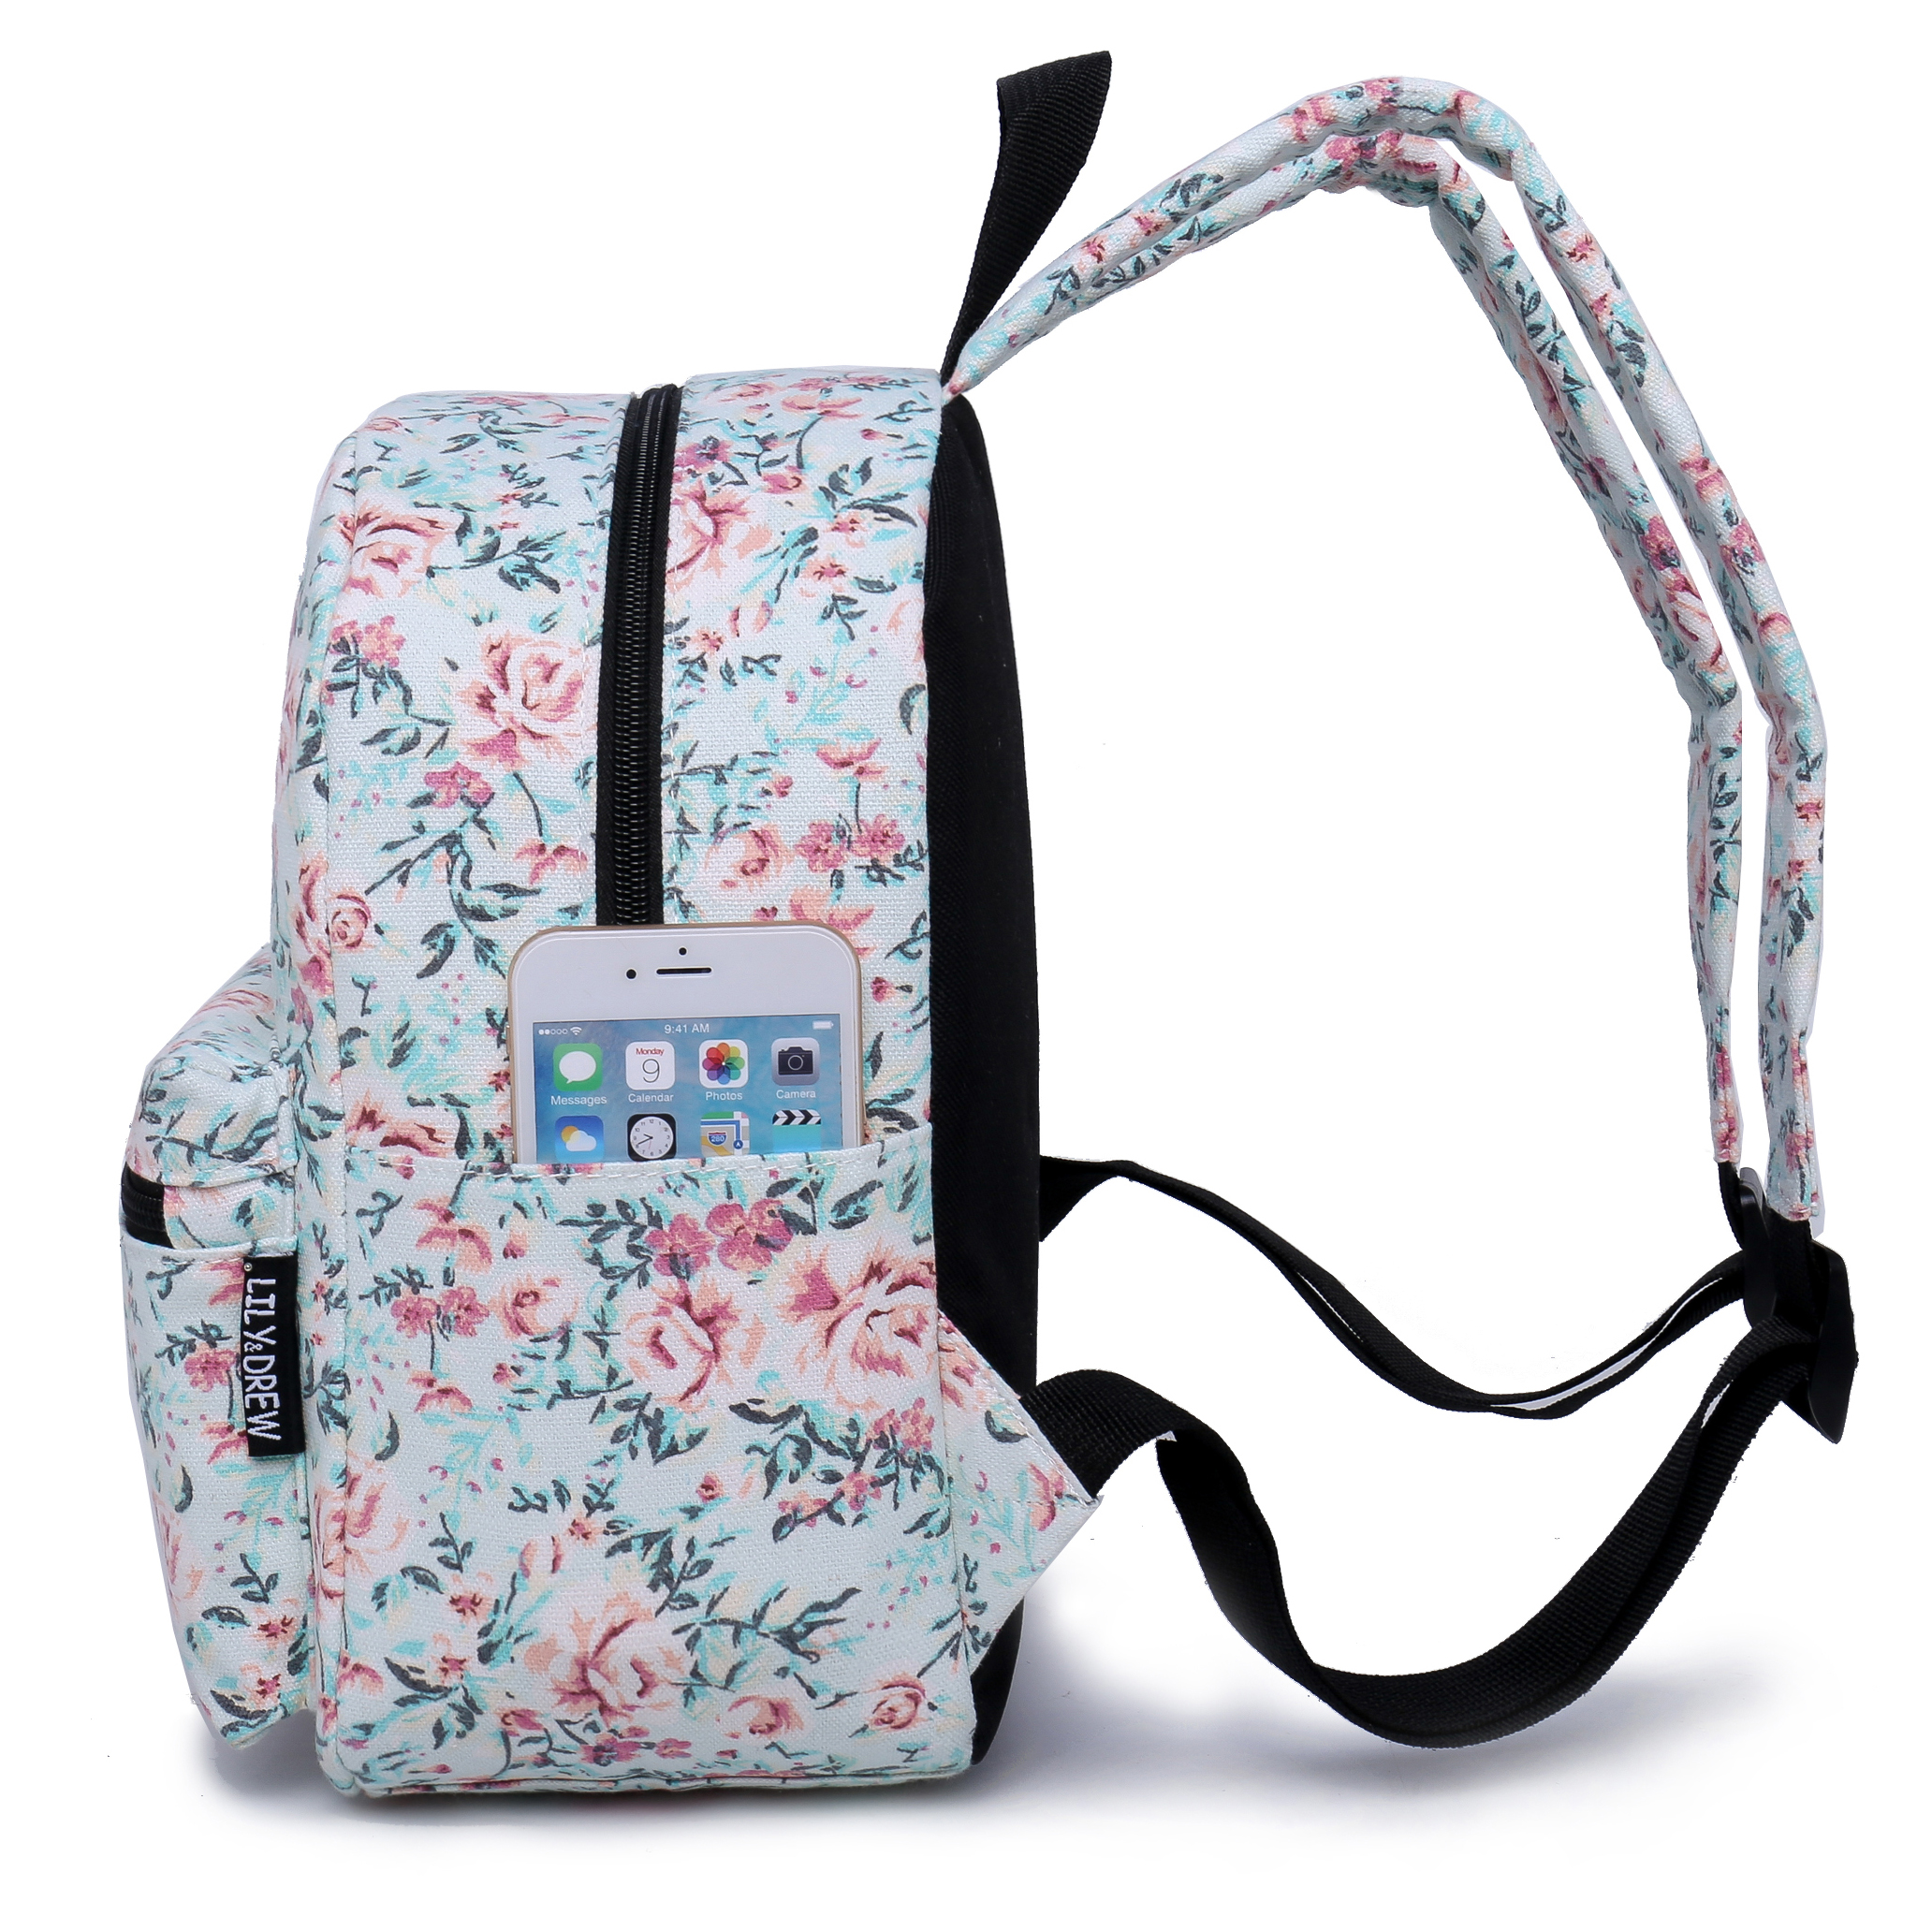 NEW: Improved straps on our canvas mini backpack